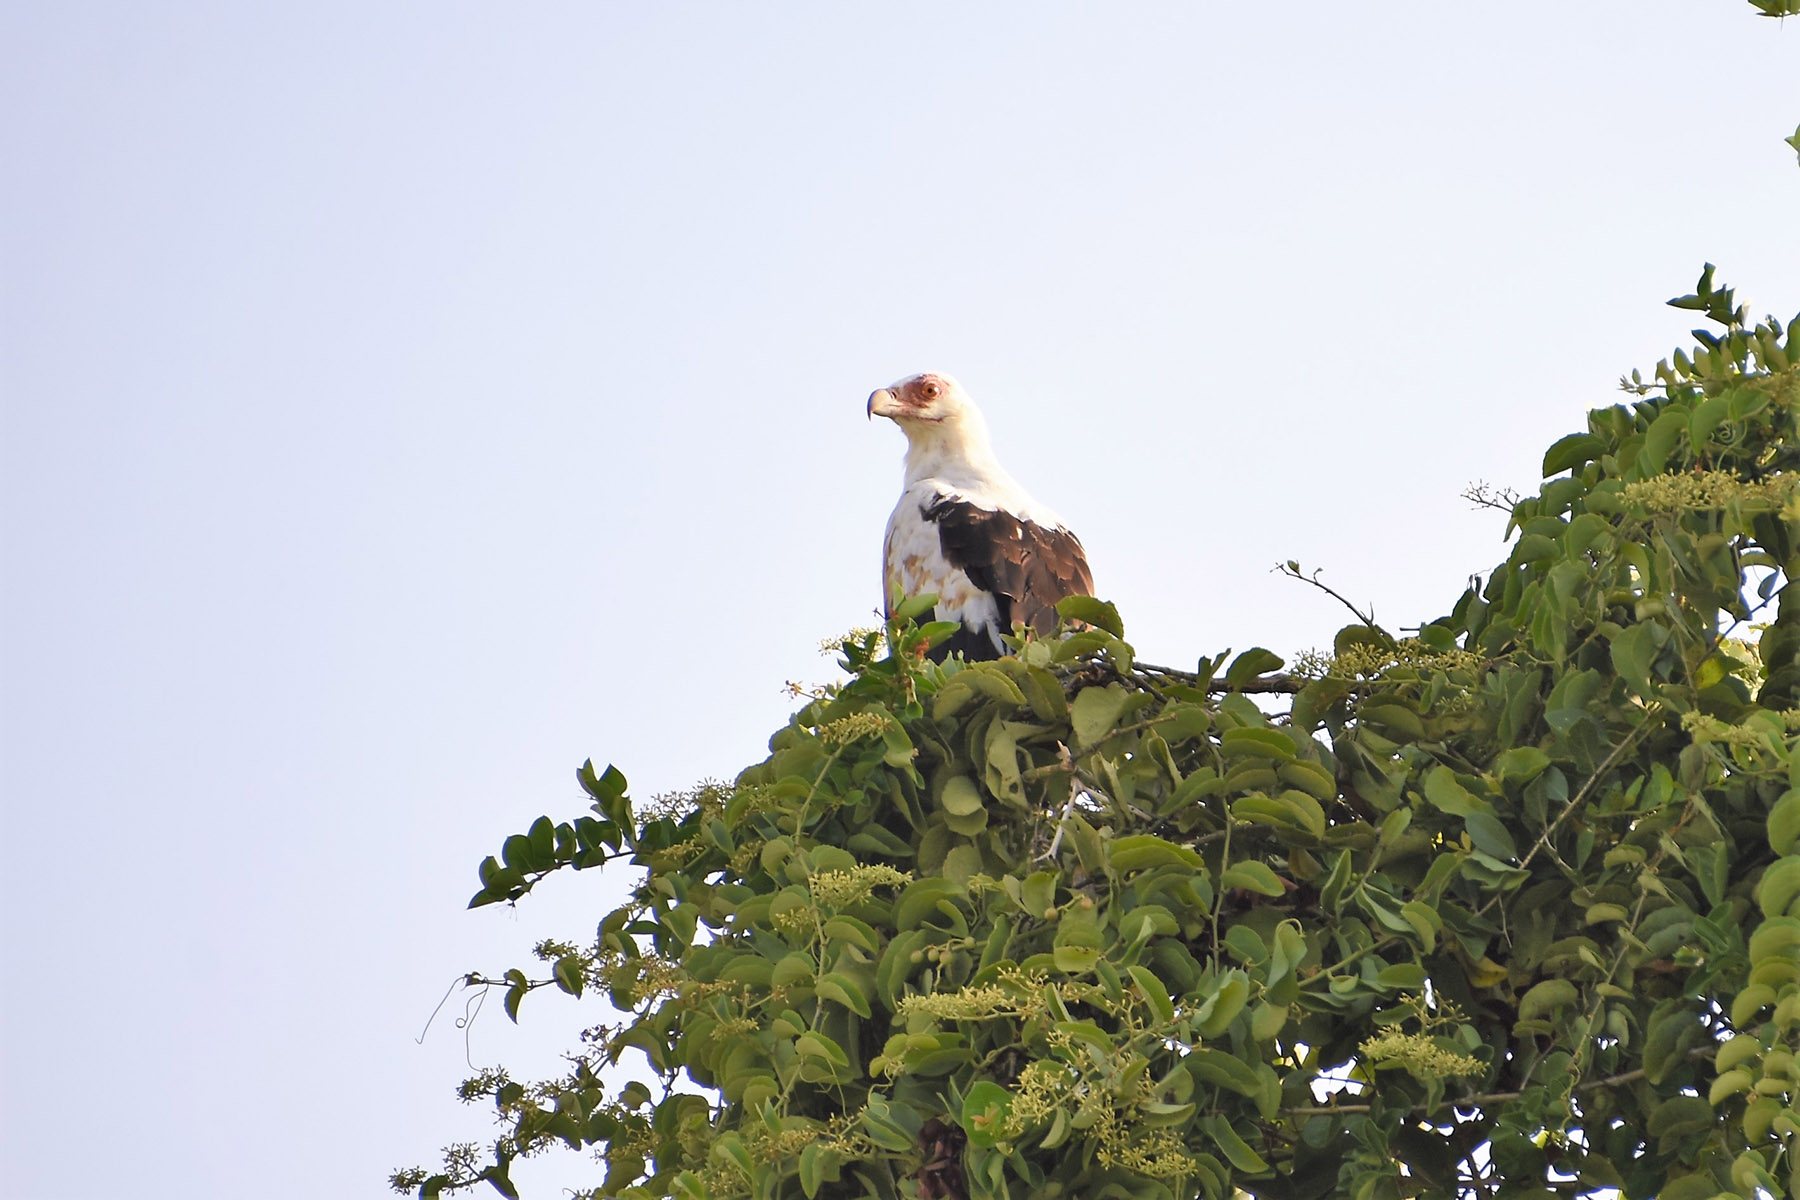 Fish eagle at the top of a green tree in front of the light blue sky in Saadani National Park in Tanzania, East Africa.